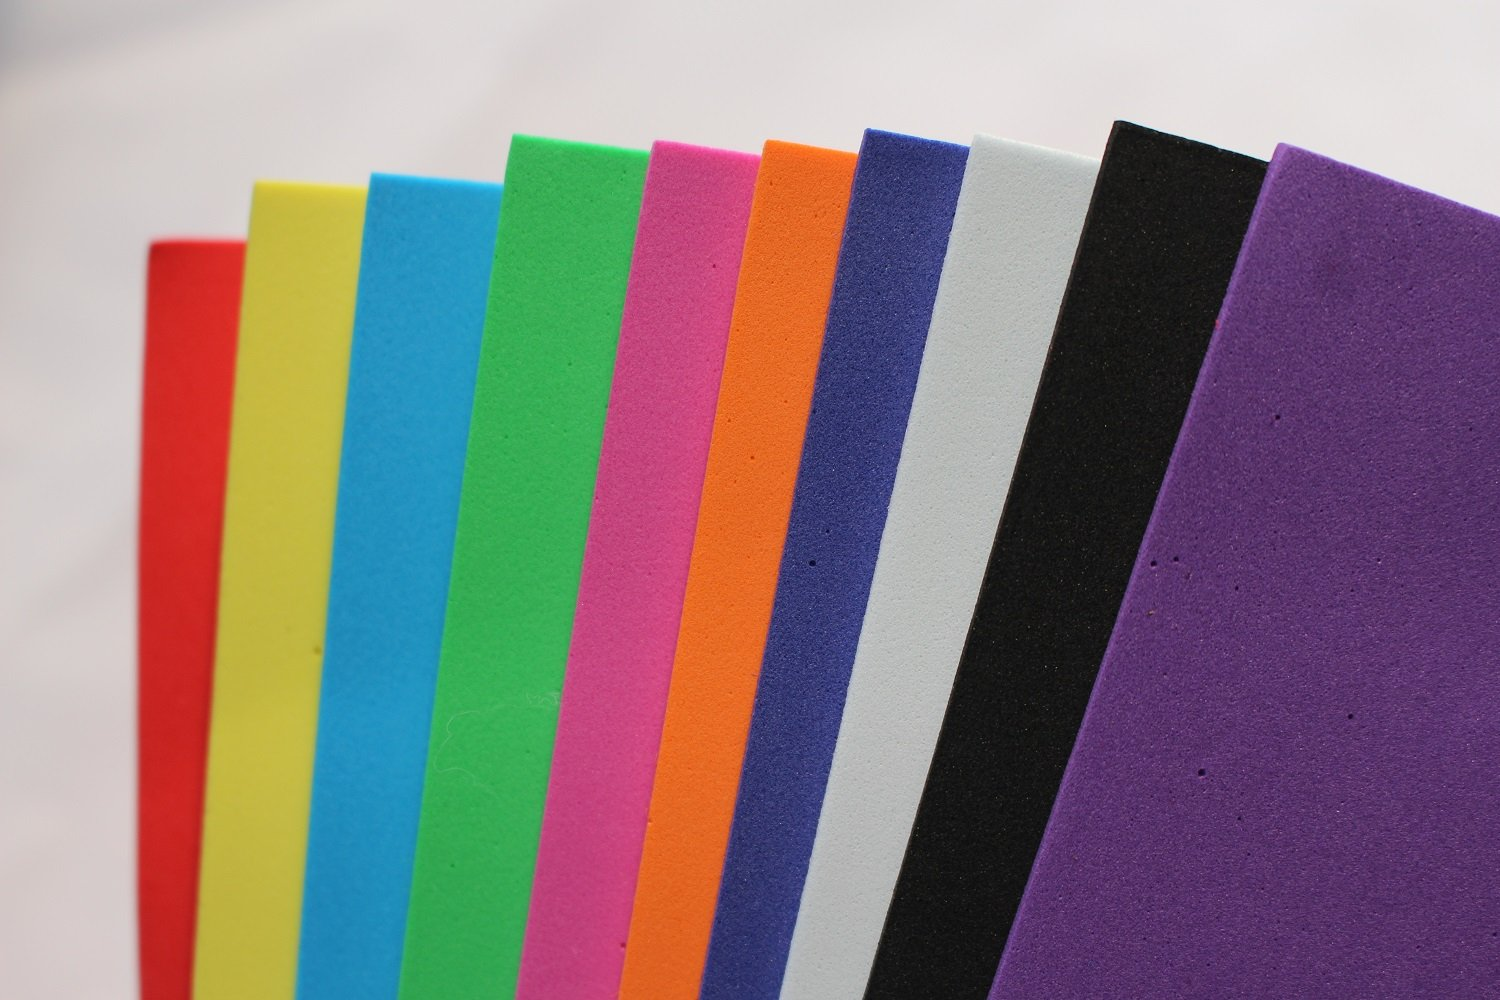 10X10cm 10 pcs 10 Colors Assorted Fly Tying Foam Paper Sheet Thin EVA Foam Ant Bugs Beetle Fly Tying Materials